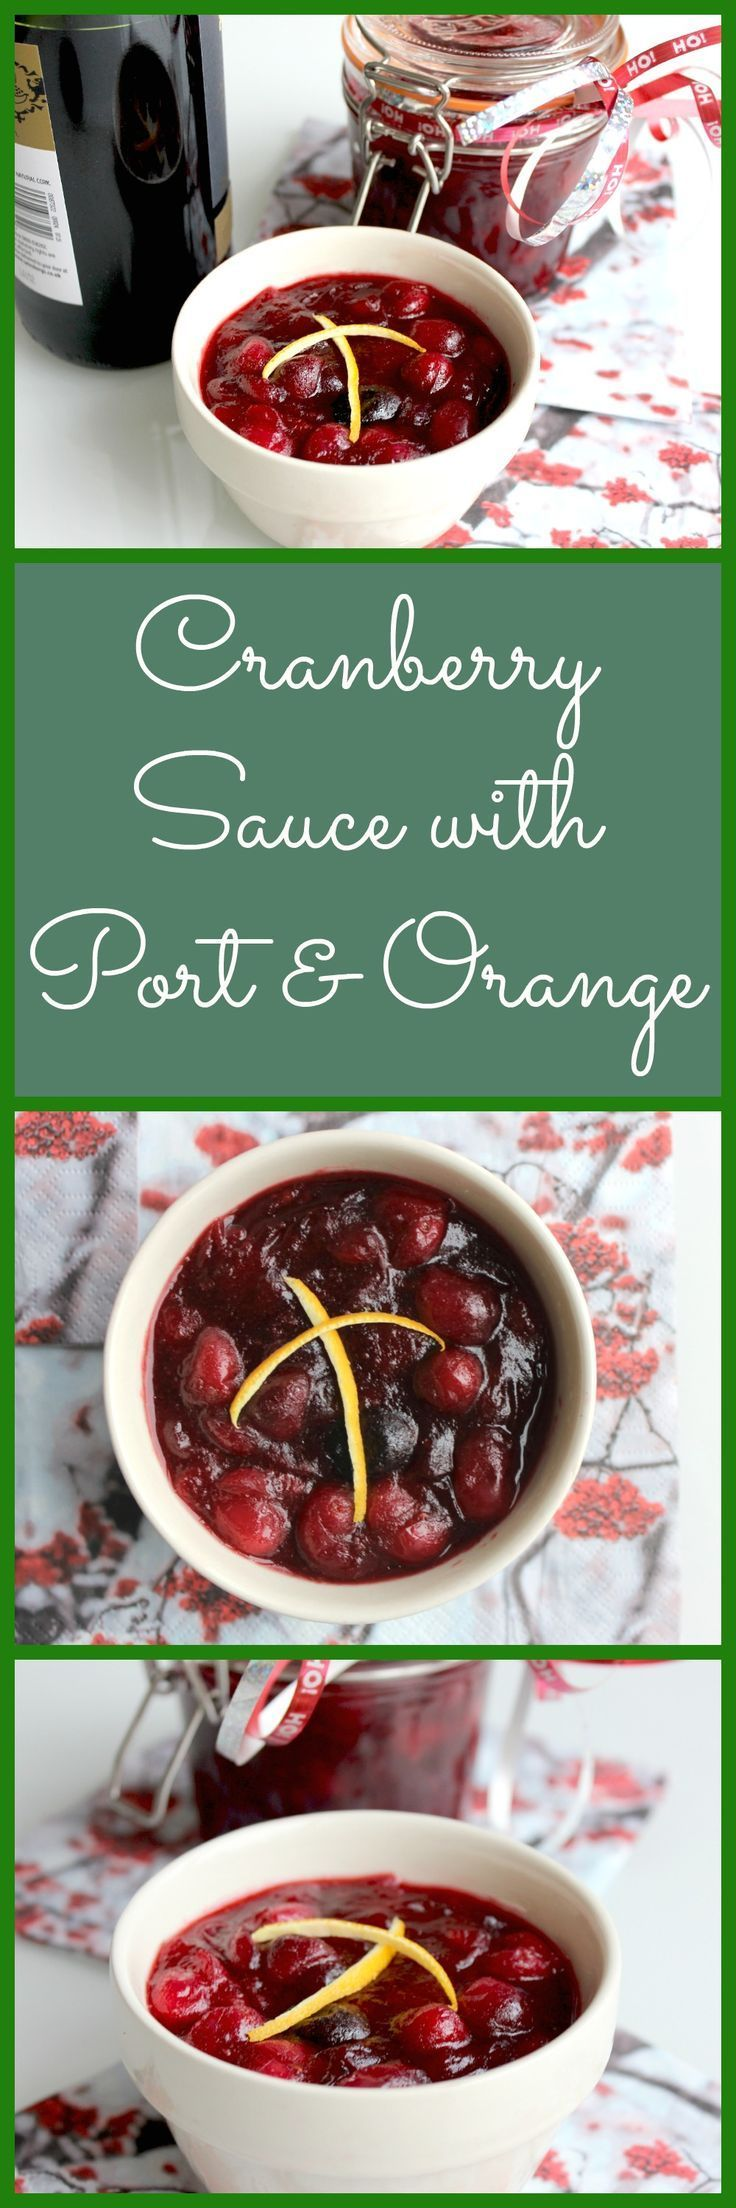 Cranberry Sauce with Port and Orange  Festive Food | Make Ahead Recipes | Easy Recipe | Christmas Sides | Cranberry sauce with alcohol  #cranberrysauce #easycranberrysauce #cranberrysaucewithorange